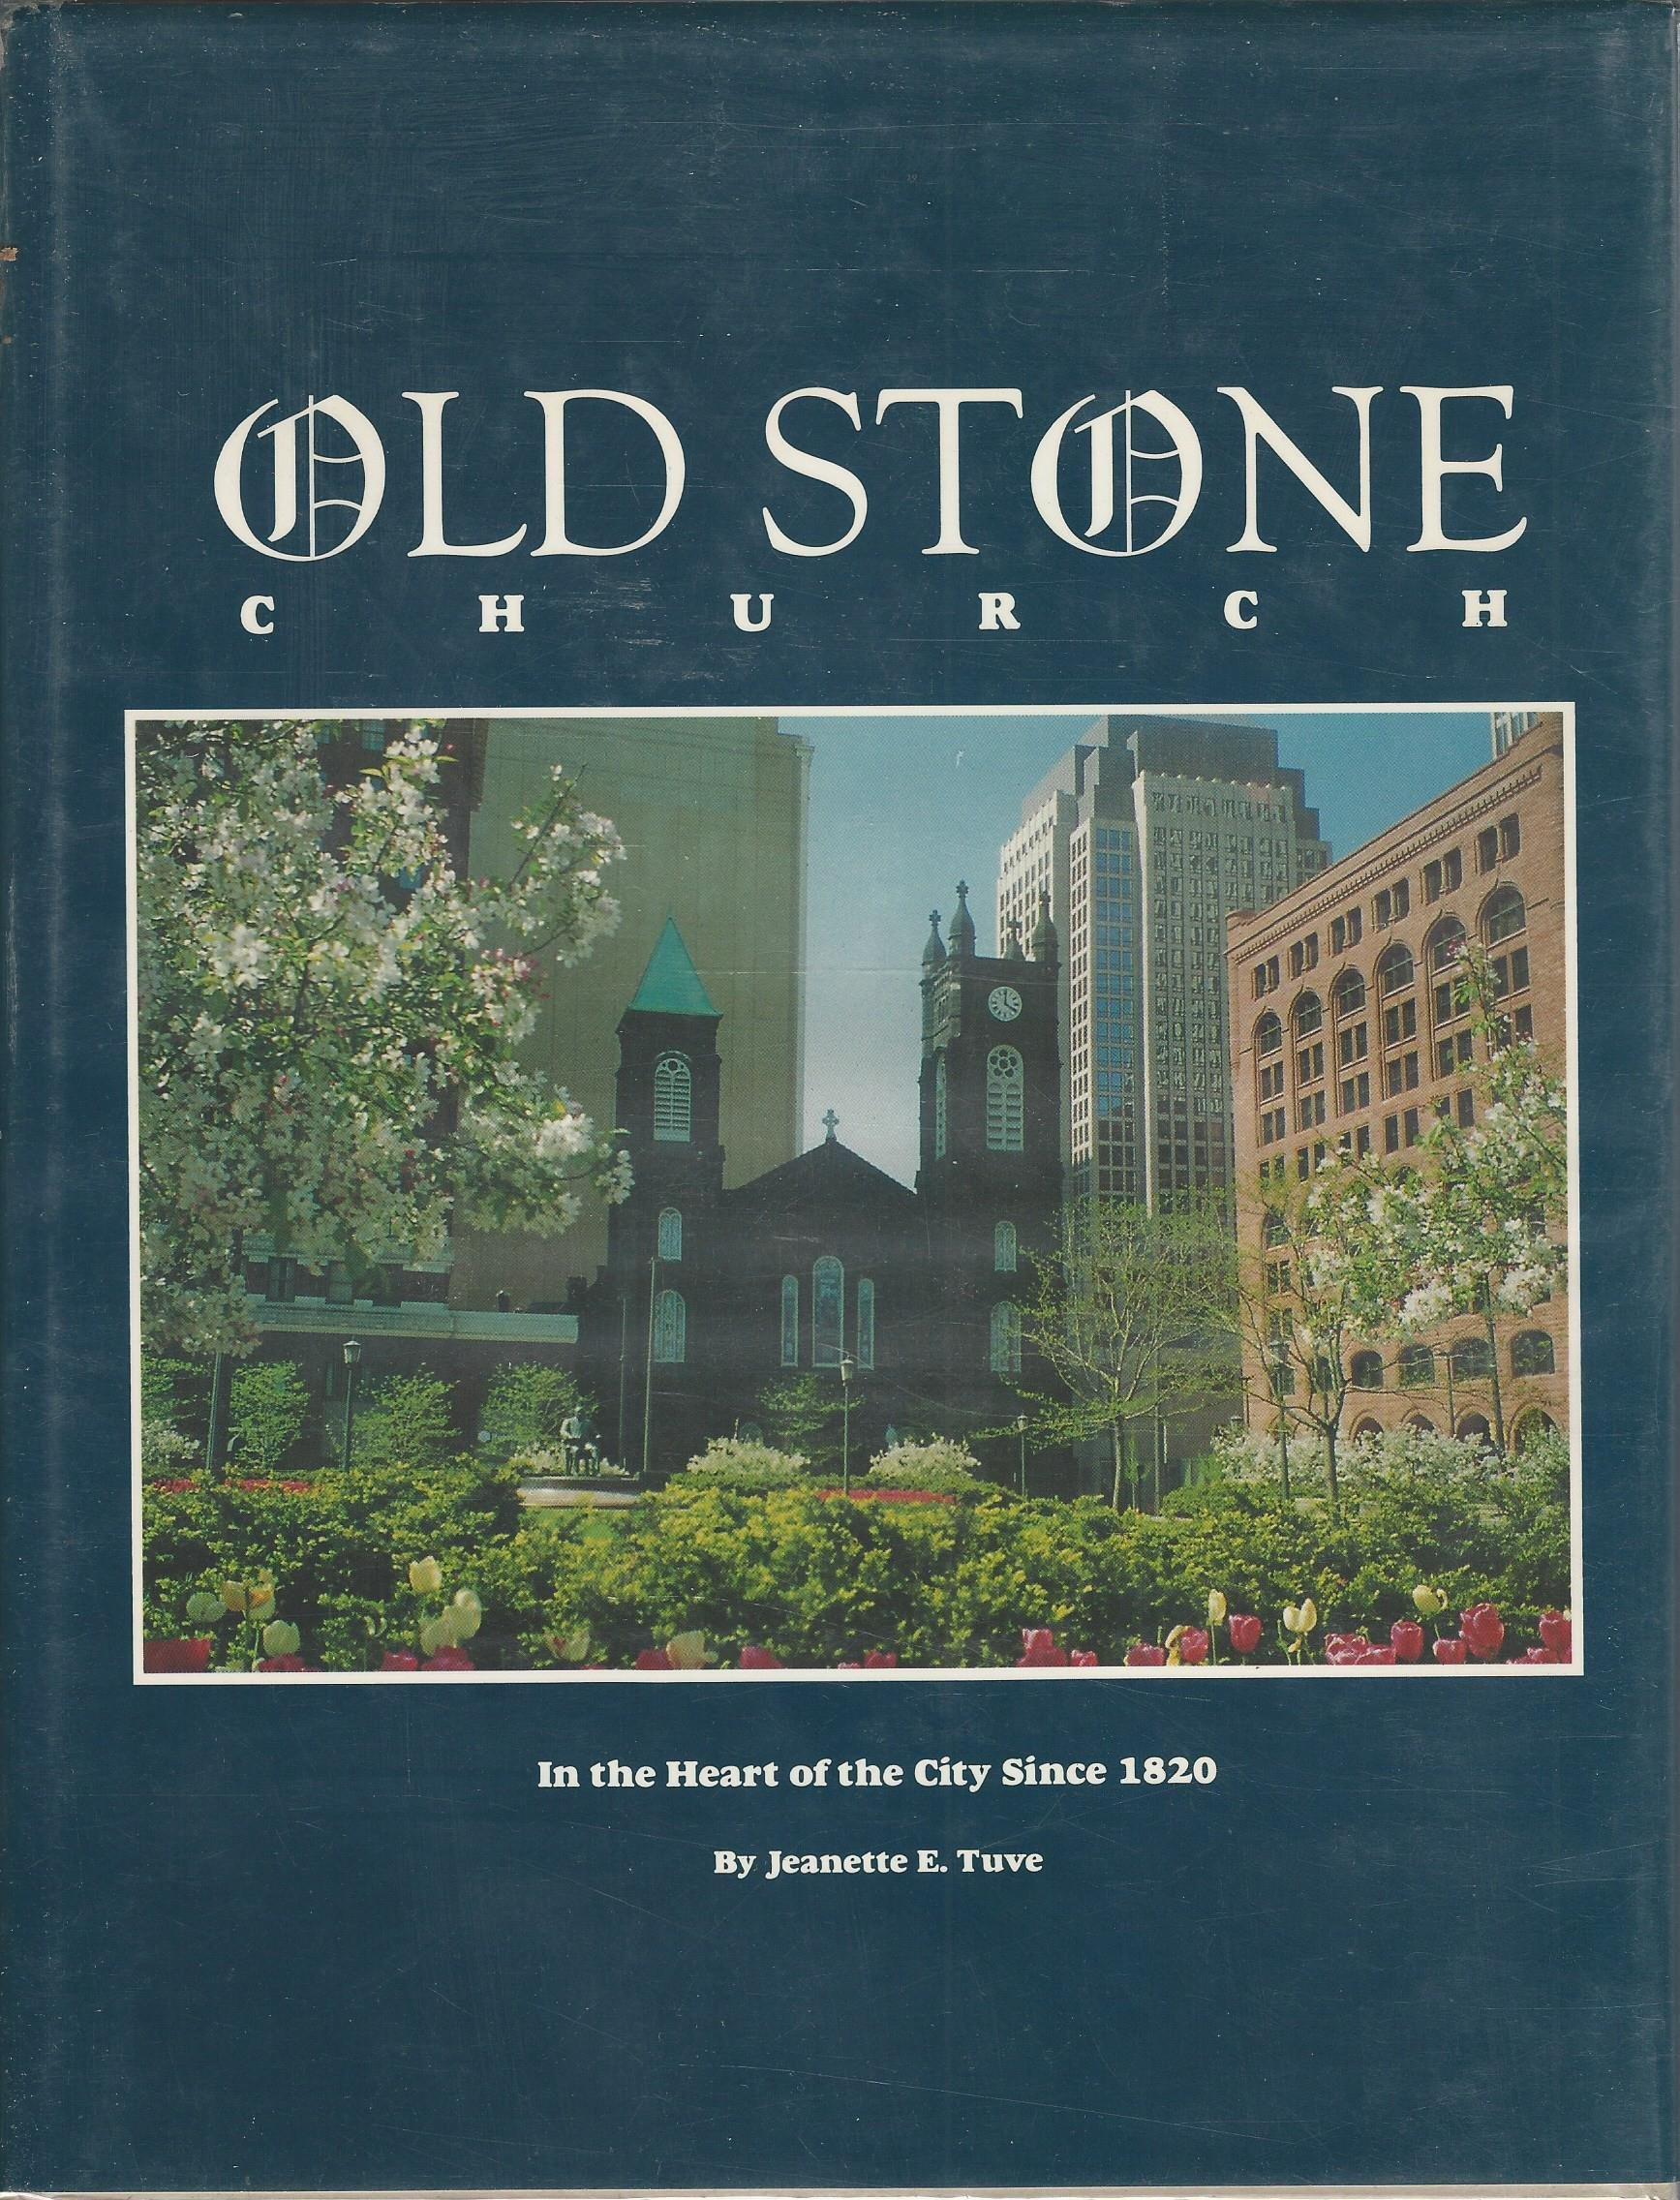 Old Stone Church: In the Heart of the City Since 1820